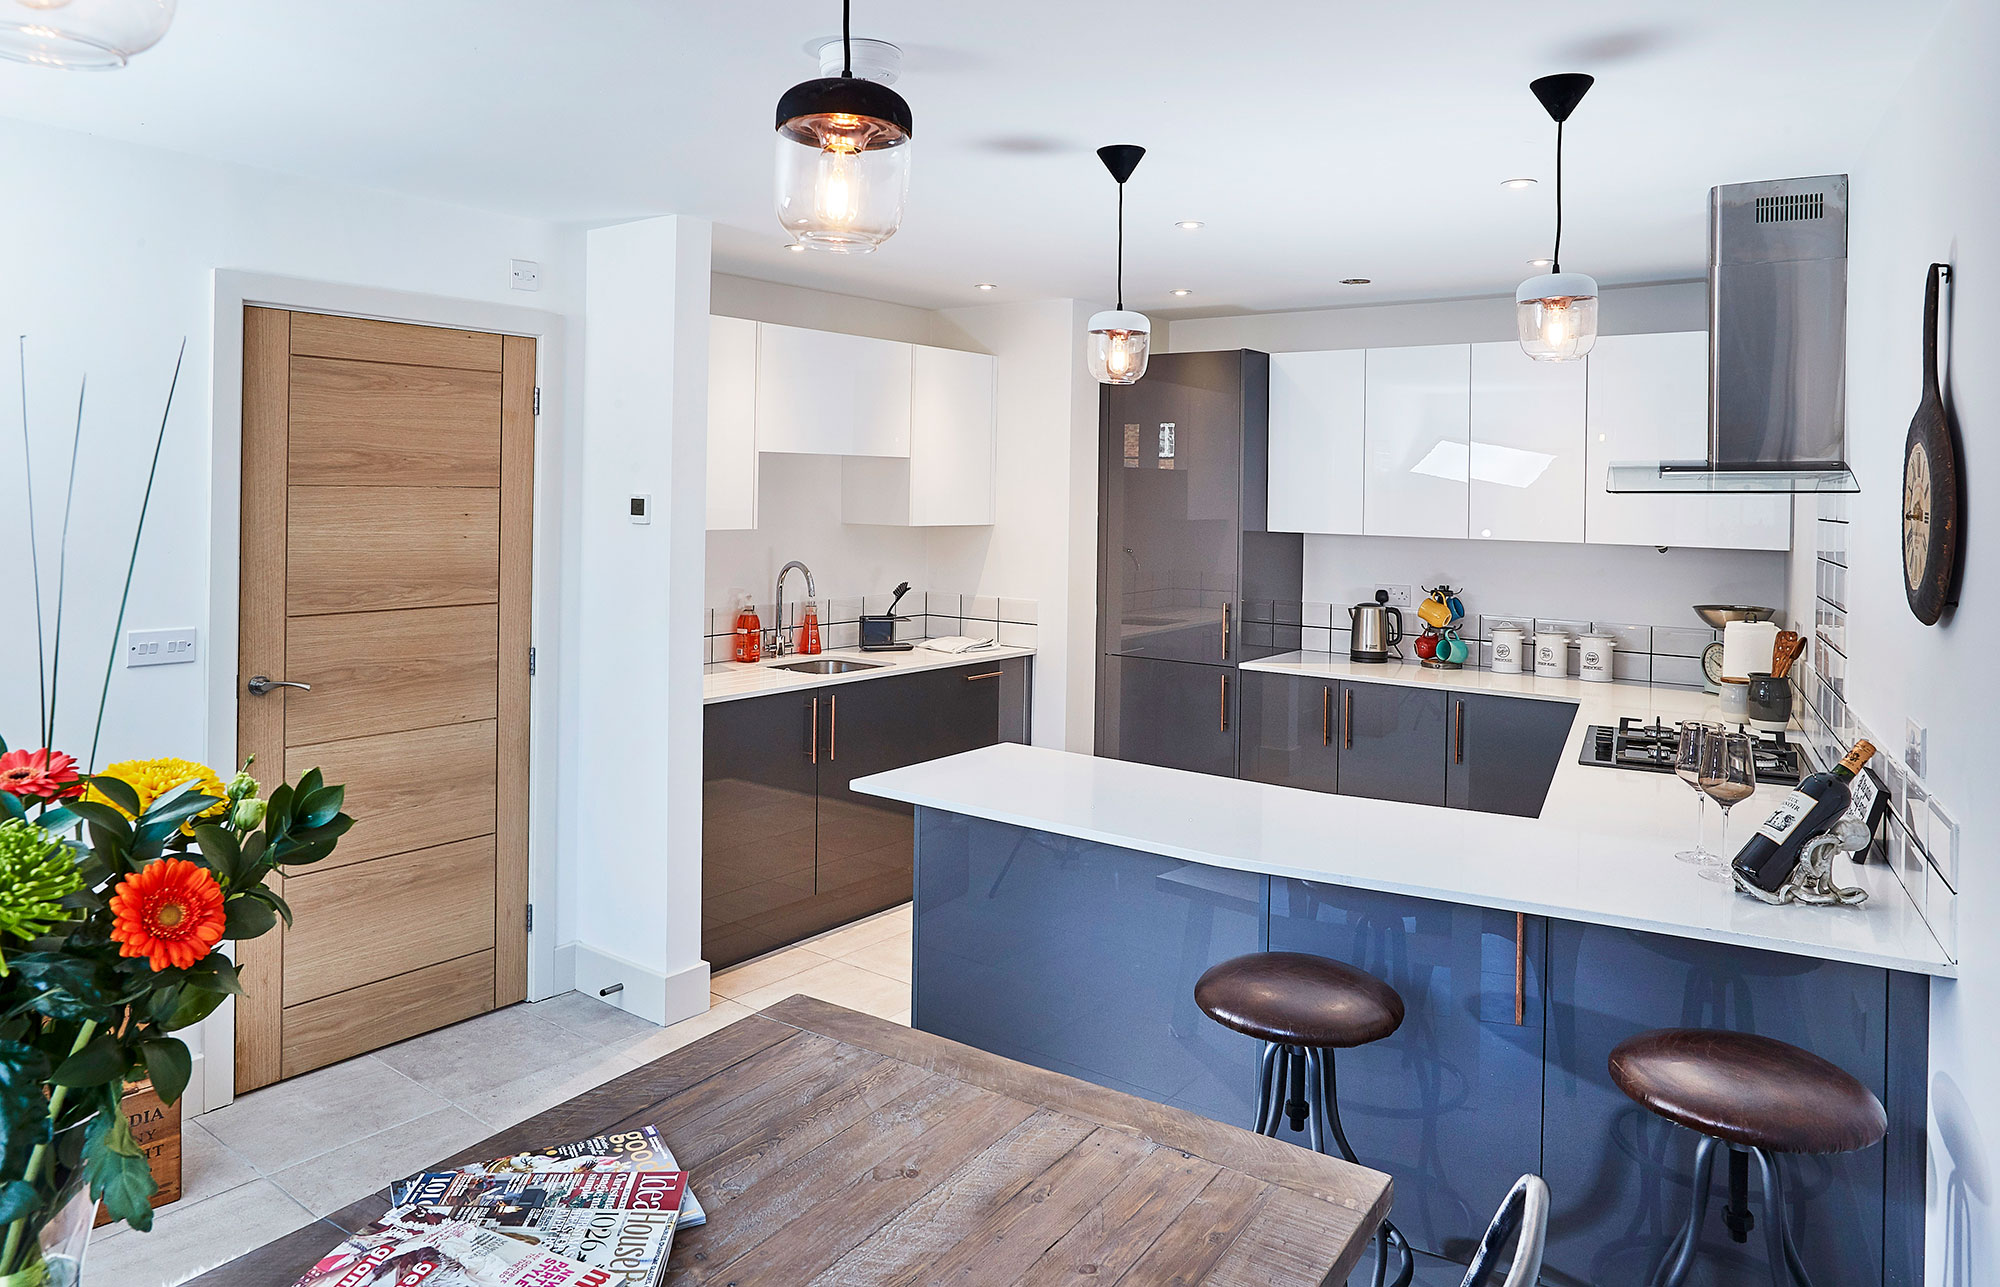 Kitchens at Old Mustard Mews are handmade by Ashbrooke Manufacturing